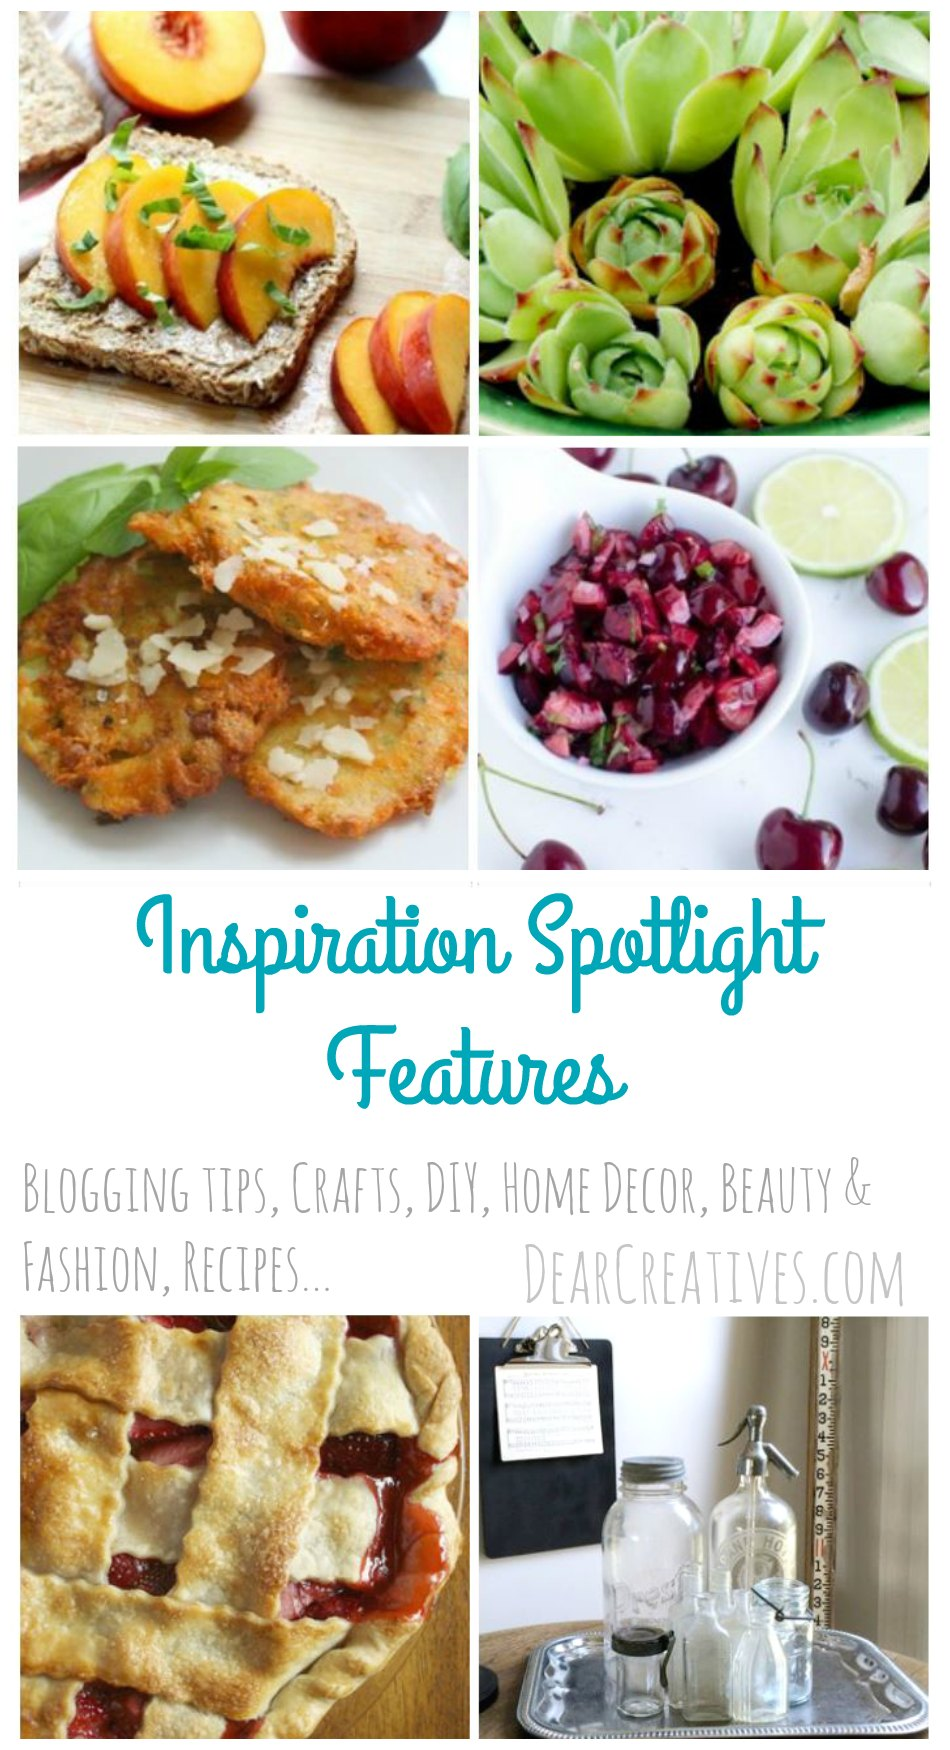 Inspiration Spotlight Linkup Party where bloggers share their favorite blogging tips, crafts, DIY, recipes, beauty & fashion, sewing and more! Stop by grab ideas, tutorials &...